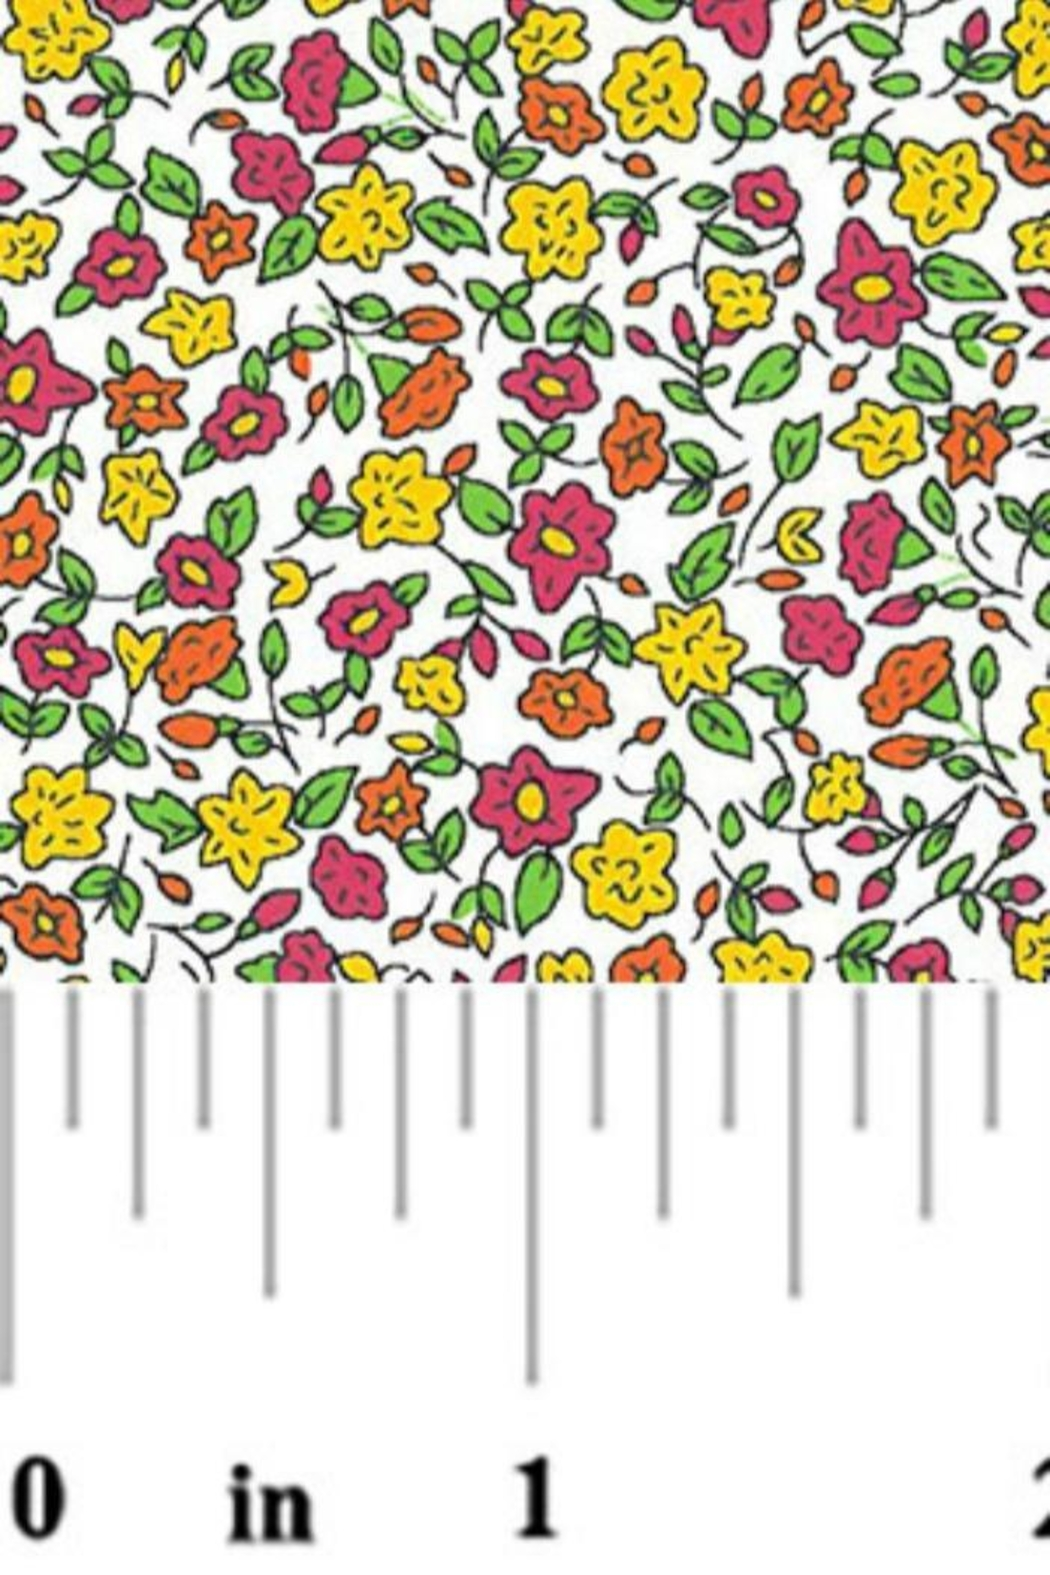 Elephants and Giraffes Floral Fabric - Main Image